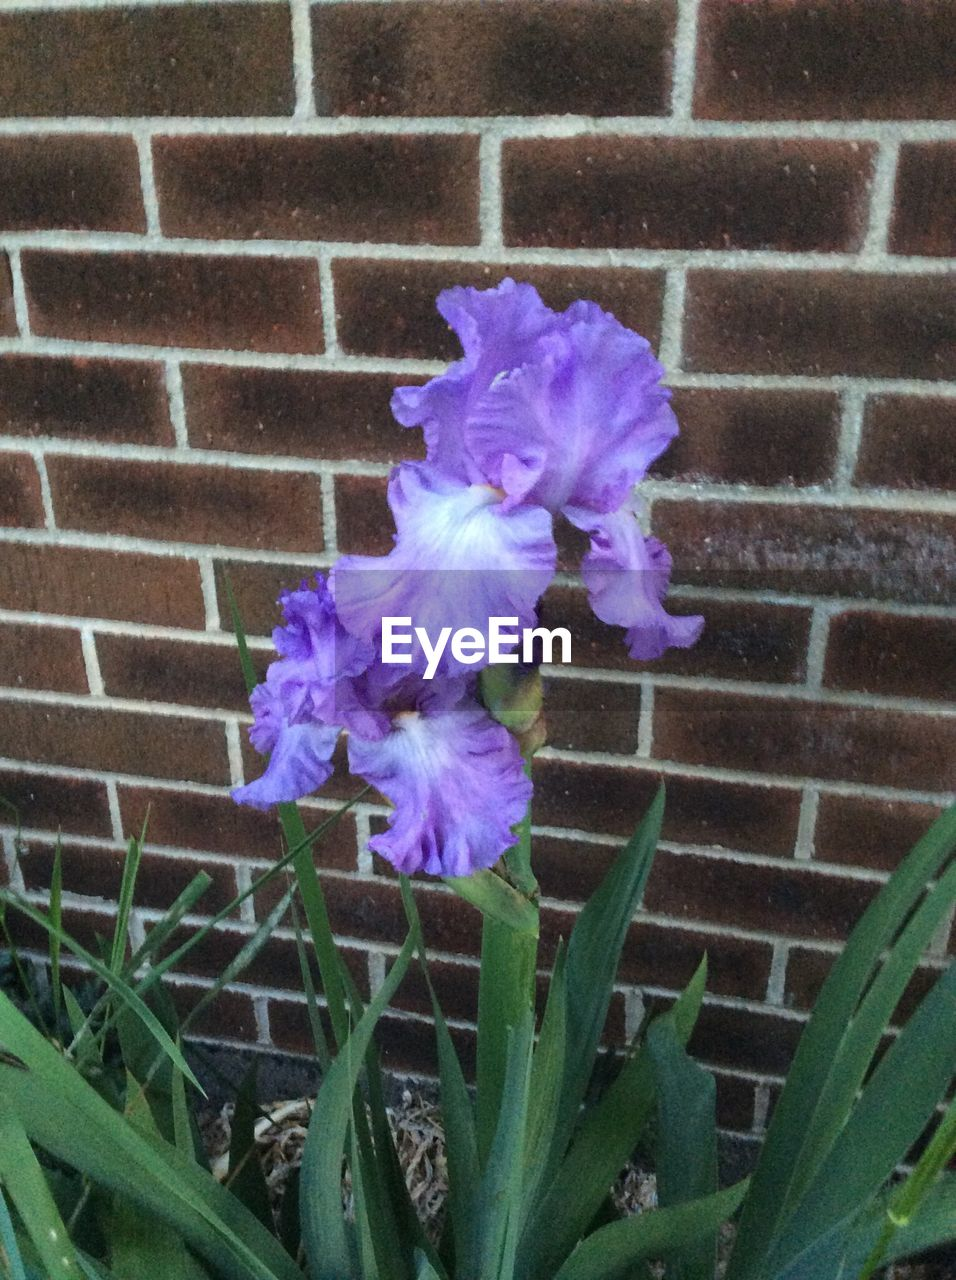 flower, growth, blooming, blossoming, spring, purple, nature, delicate, plant, pedal, beauty in nature, no people, outdoors